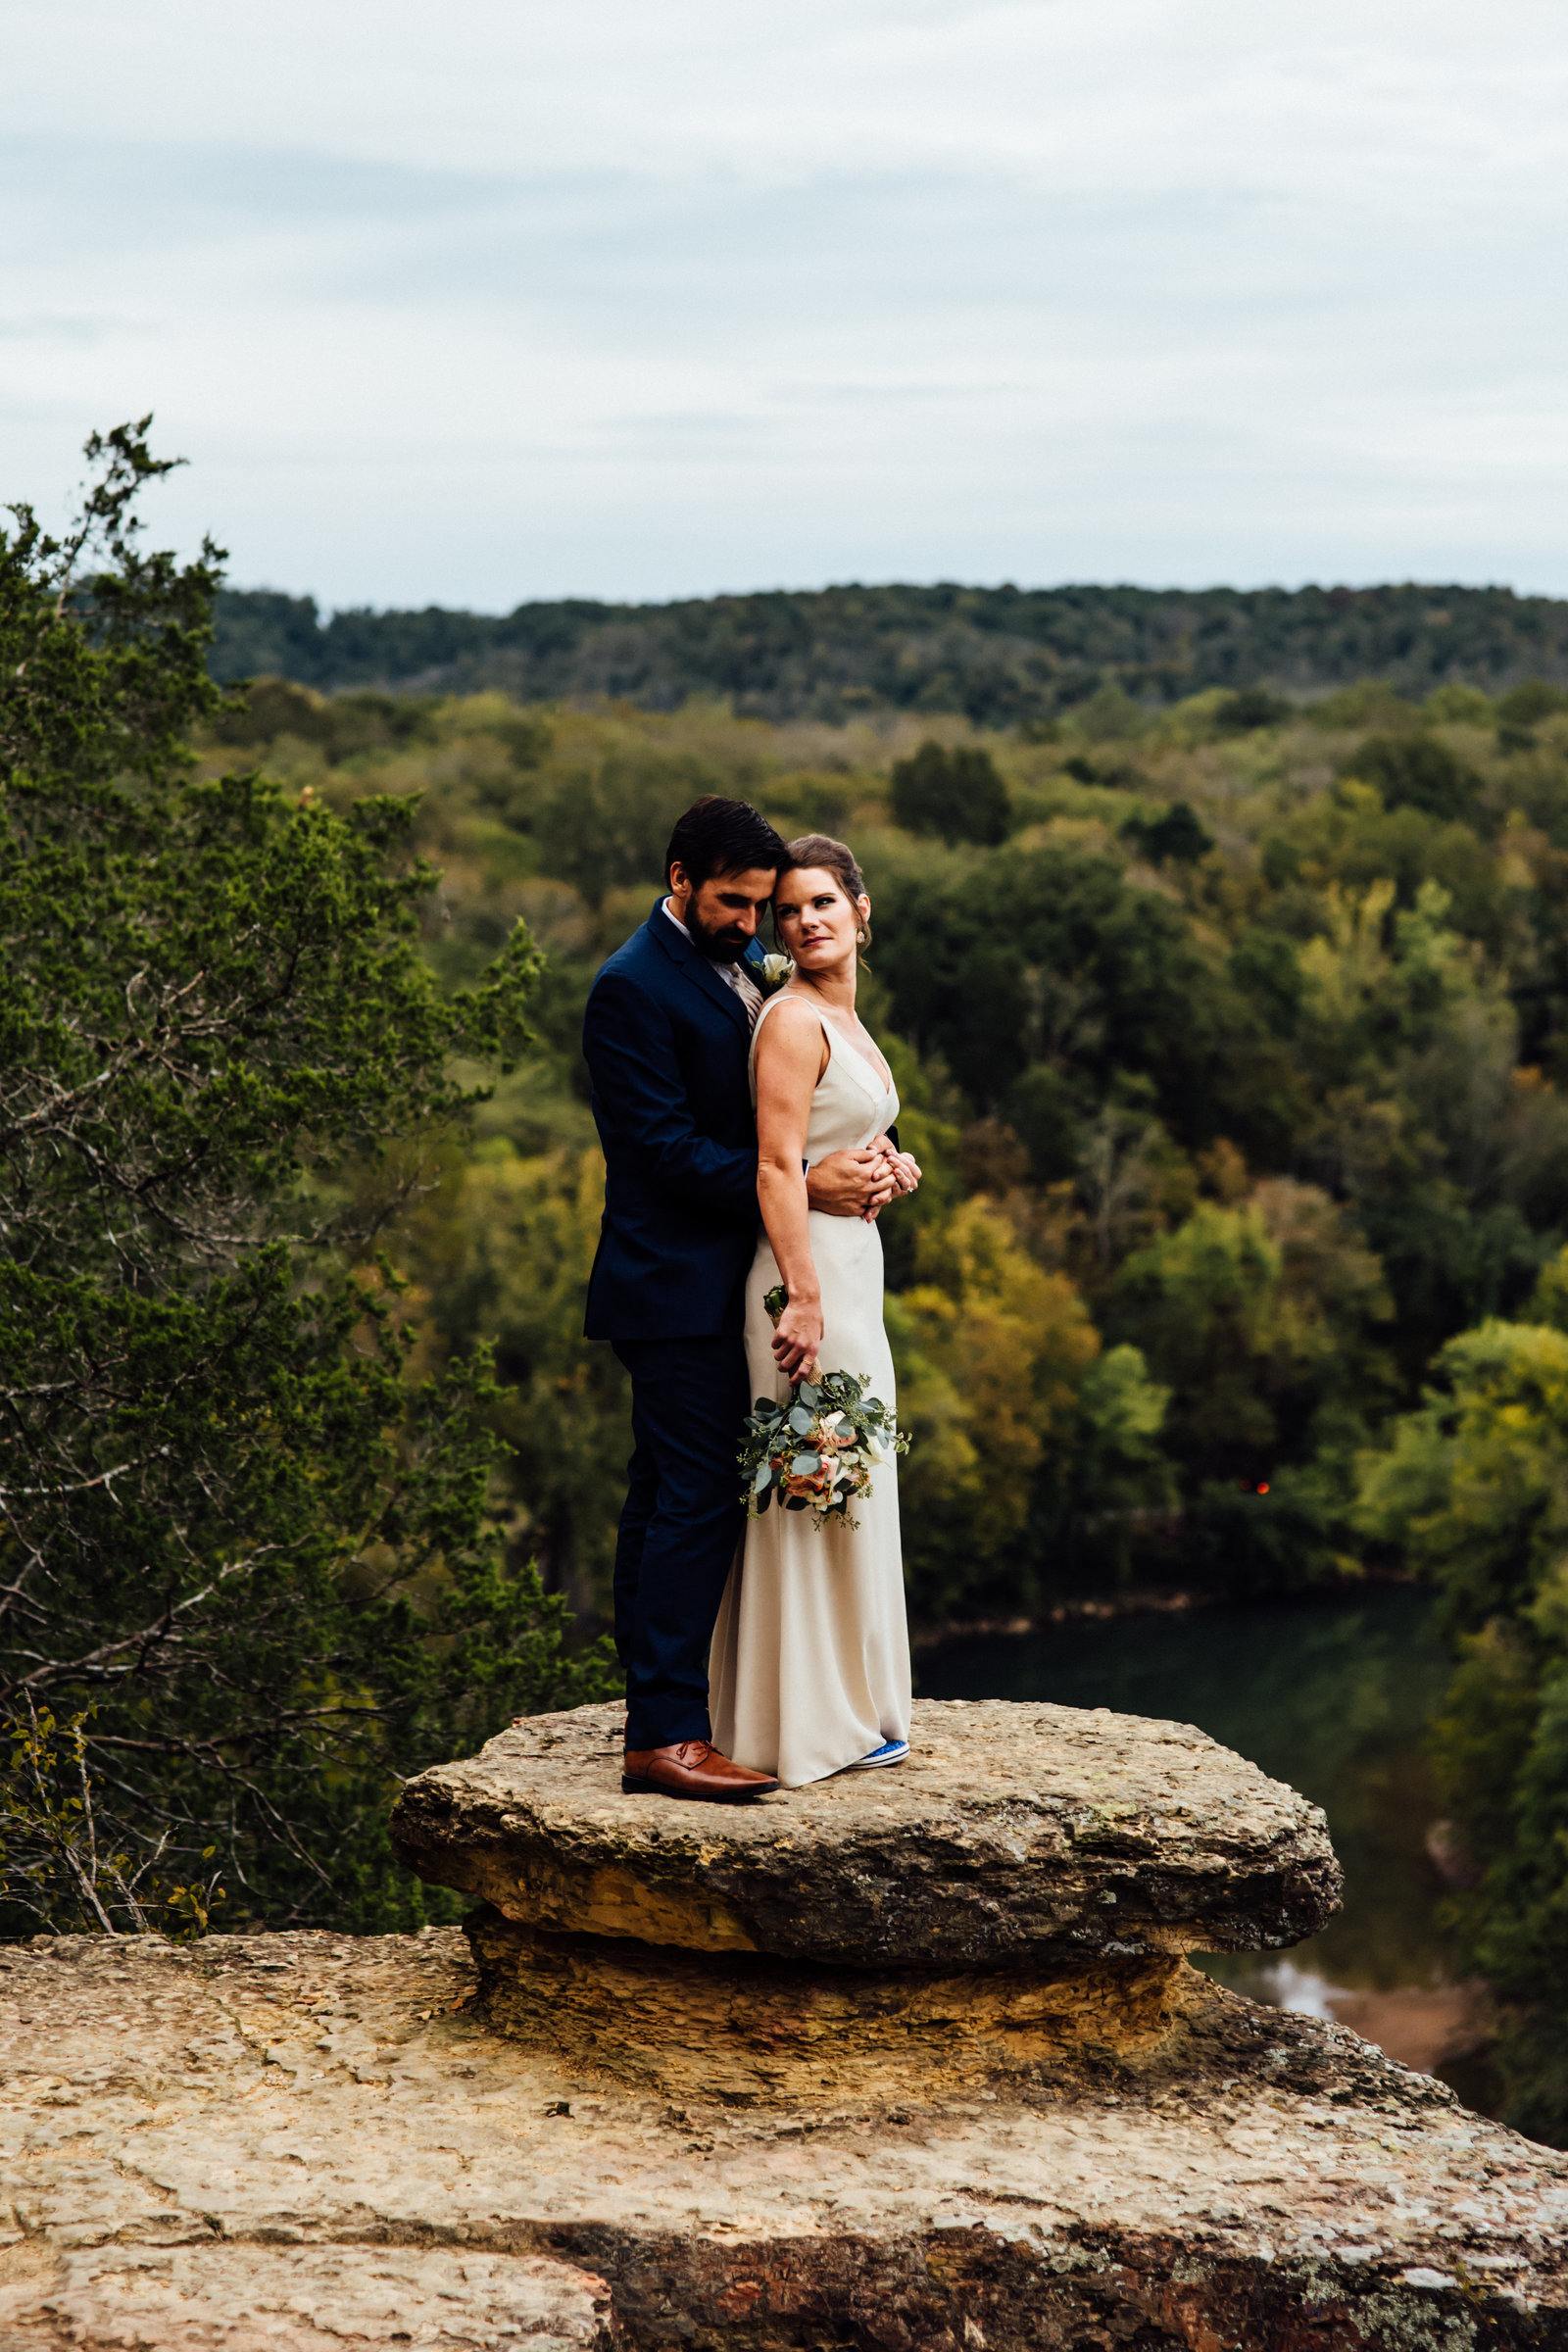 SaraLane-And-Stevie-Wedding-Elopement-Photography-Kendyl-Adam-Nashville-Tennessee-LR-124